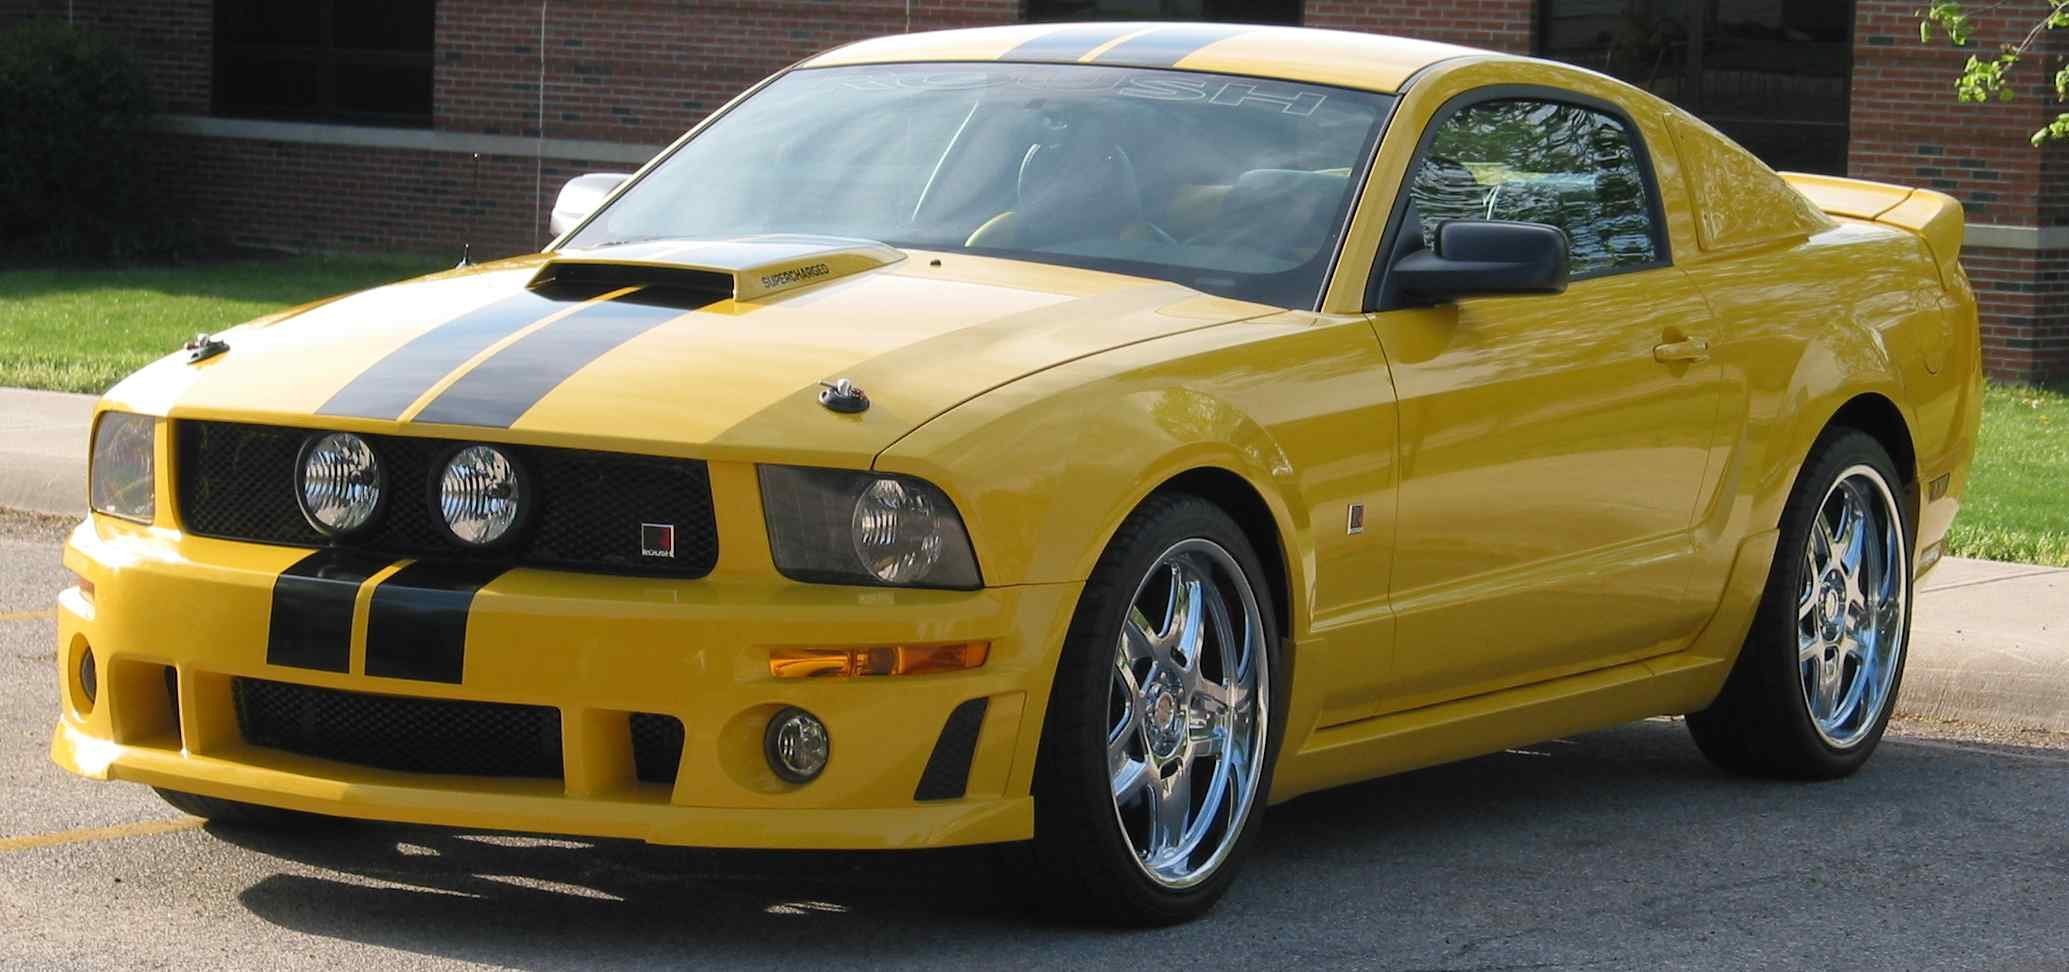 New Owner Of 2006 Screaming Yellow Roush Ford Mustang Forum